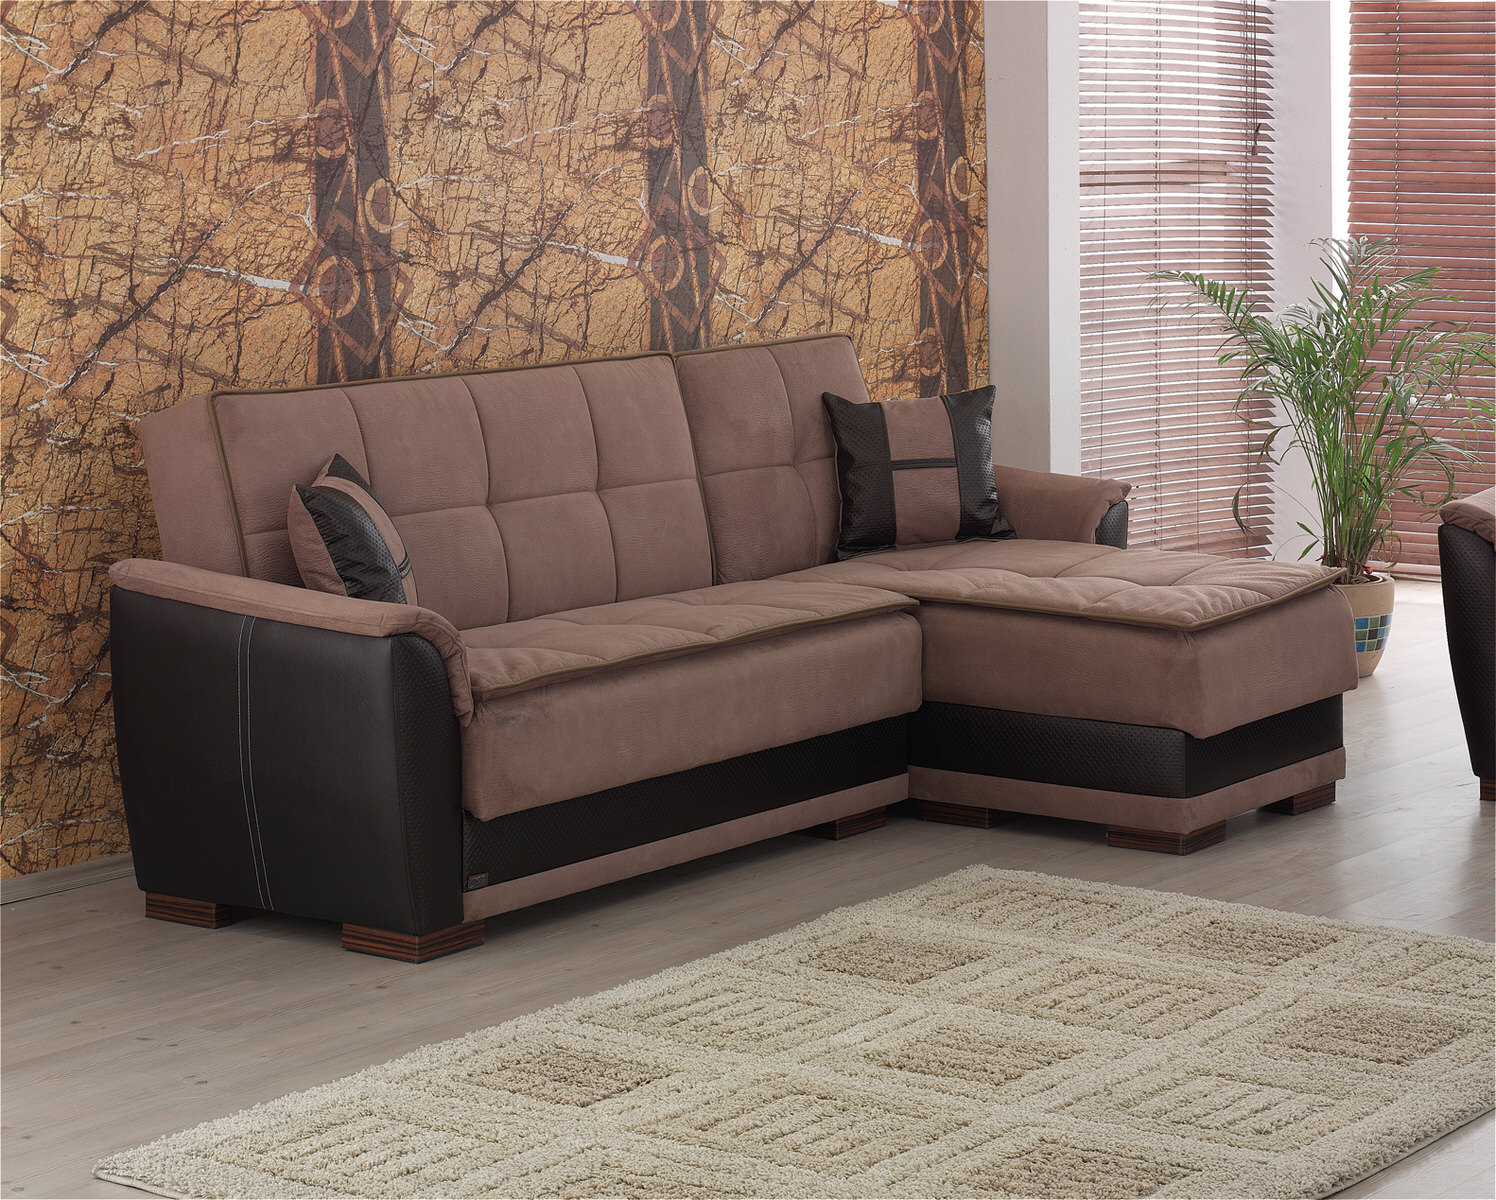 Admirable Princeton Sectional Sofa Set By Meyan Furniture Gmtry Best Dining Table And Chair Ideas Images Gmtryco